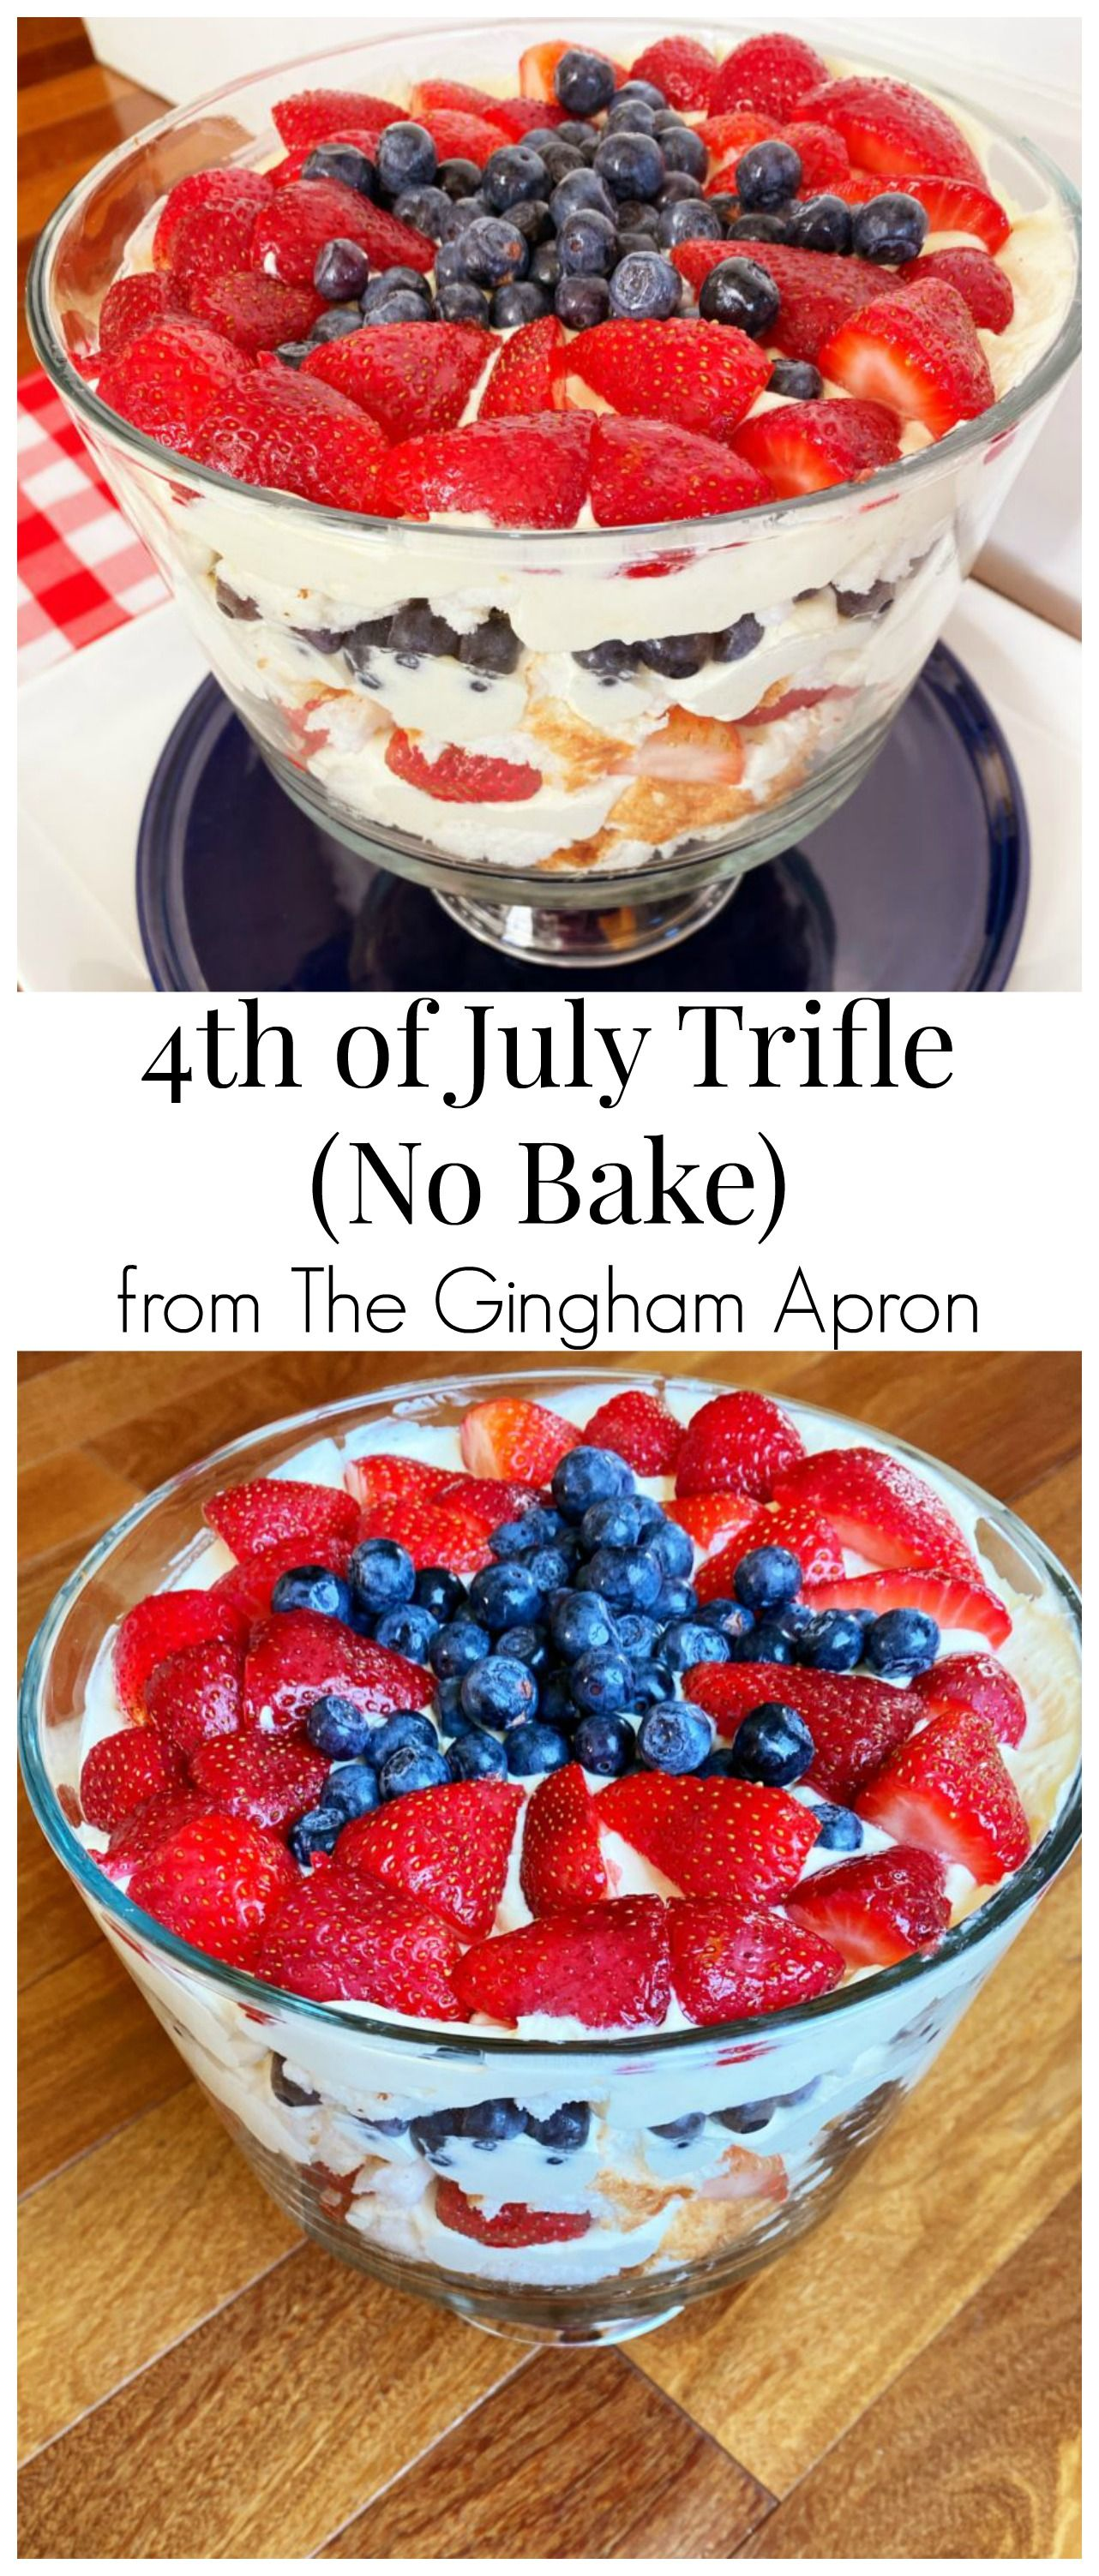 4th of July (No Bake) Trifle- This refreshing and beautiful trifle is the perfect, easy dessert for this 4th of July. #trifle #independenceday #4thofjuly #dessert #america #redwhiteandblue #nobake #easy